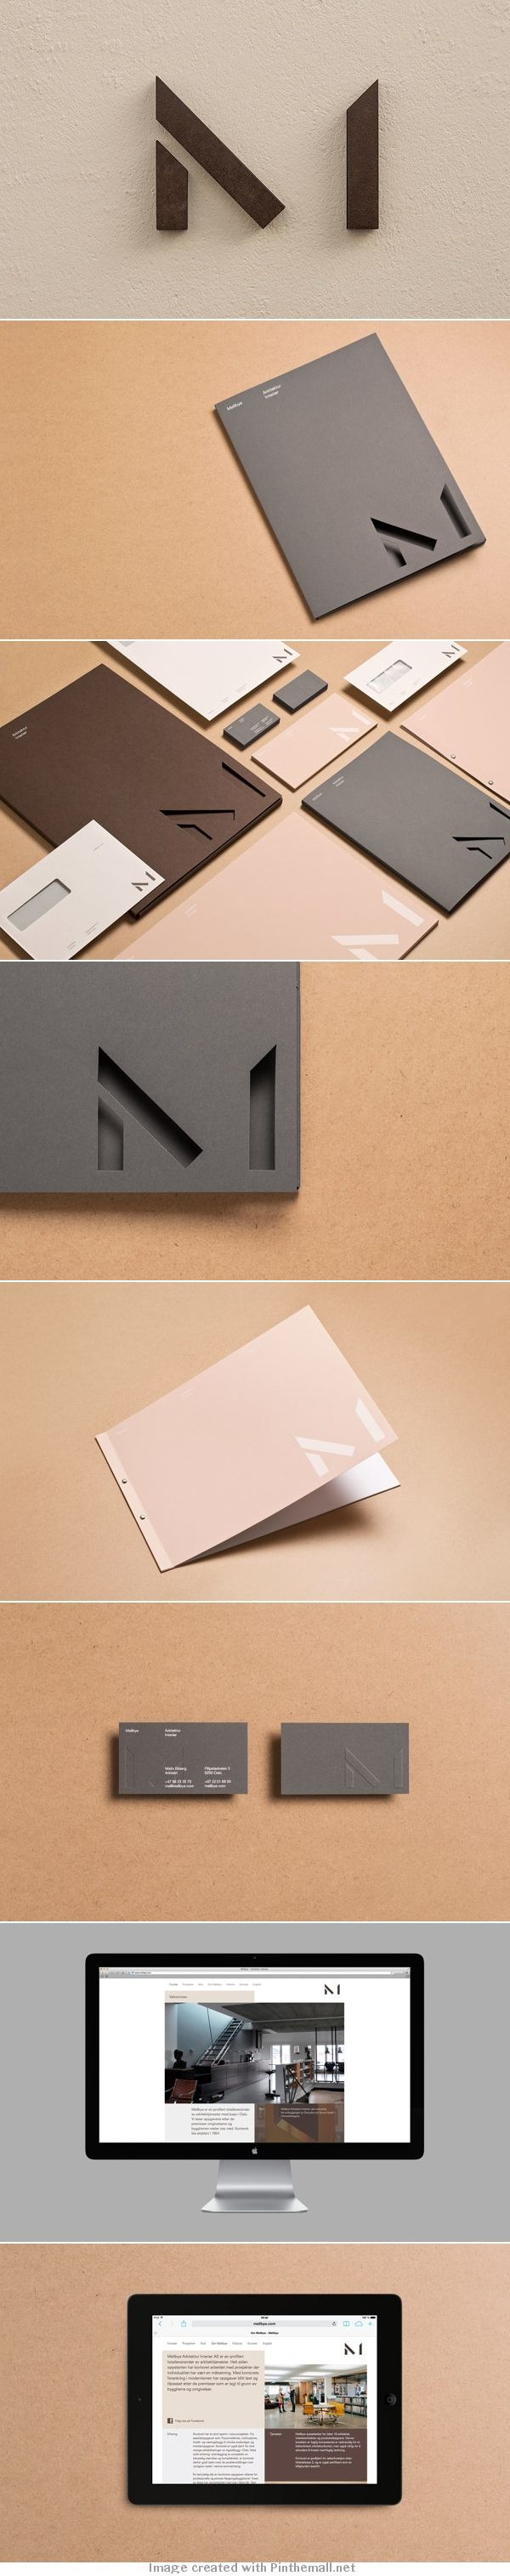 Mellbye Visual Identity #spaincreative #identity